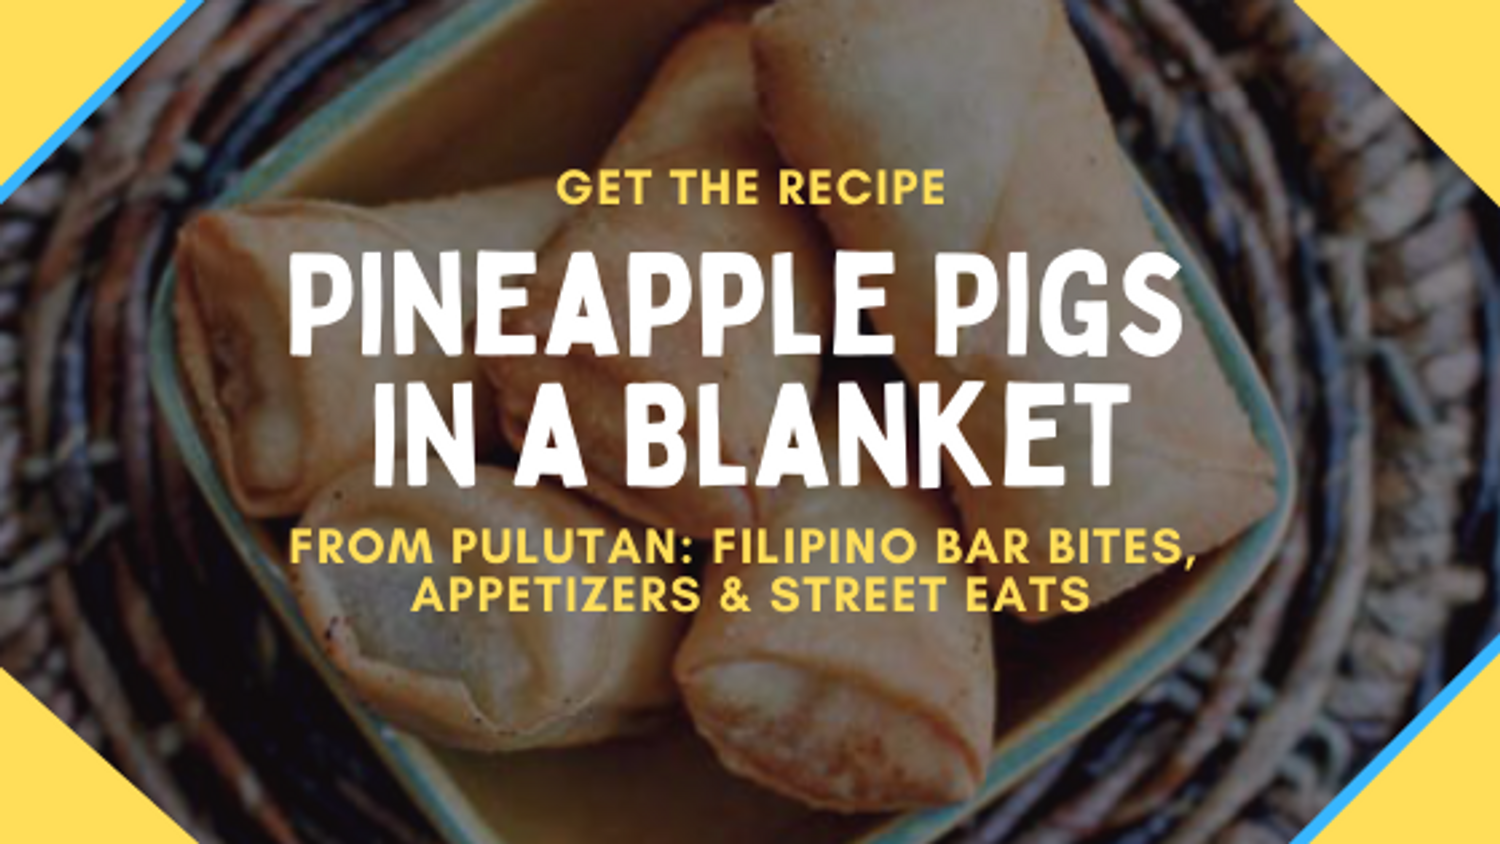 Get the Recipe: Pineapple Pigs in a Blanket